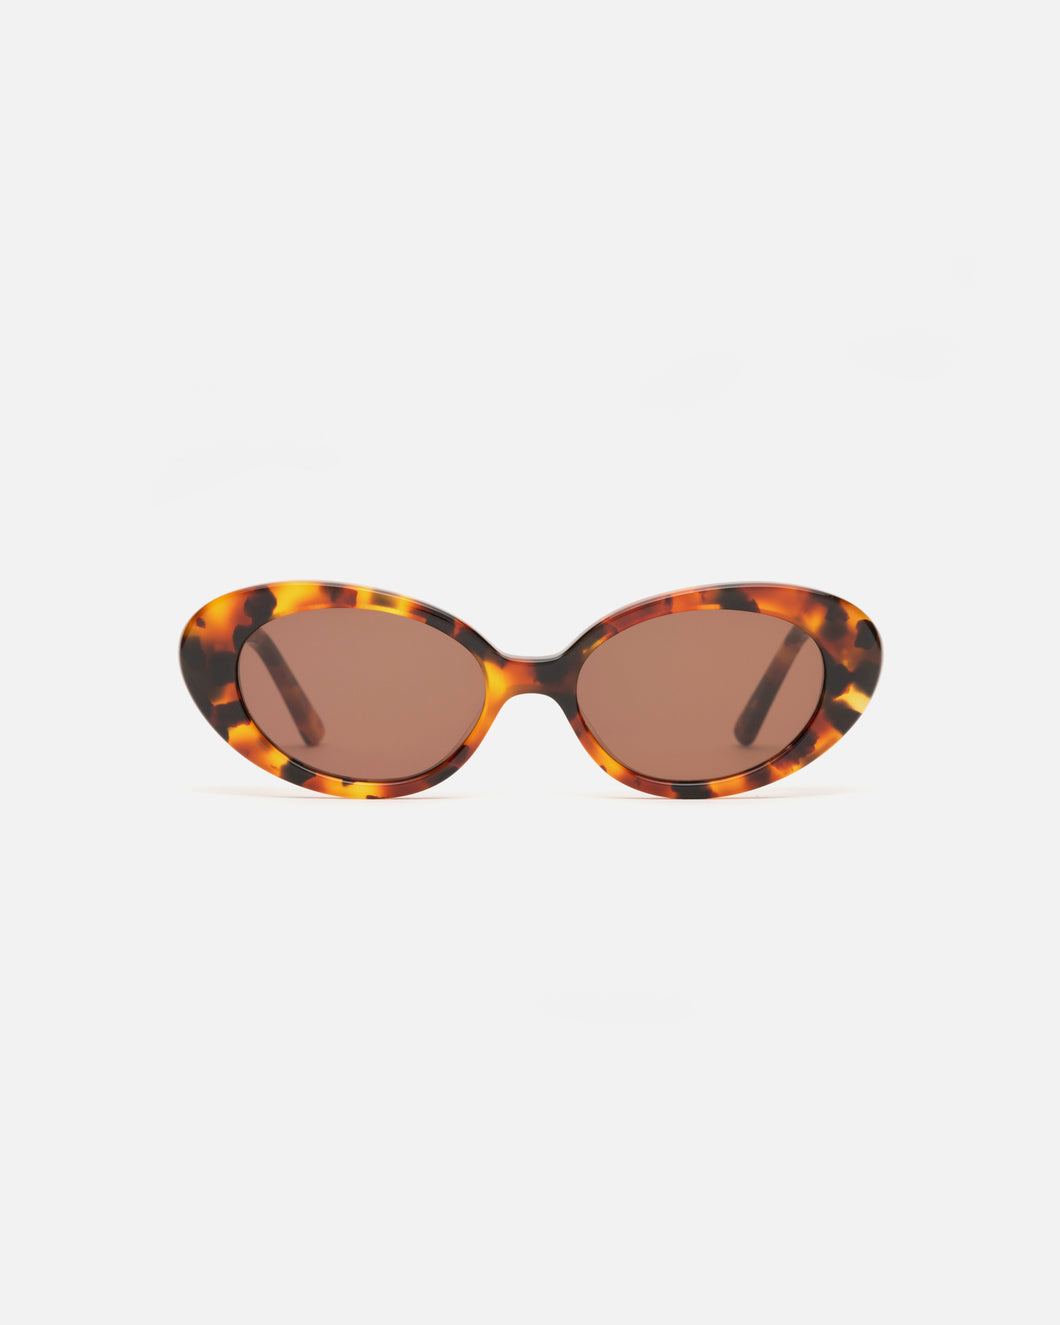 Lu Goldie Jeanne round Sunglasses in tortoise shell acetate with brown lenses, front